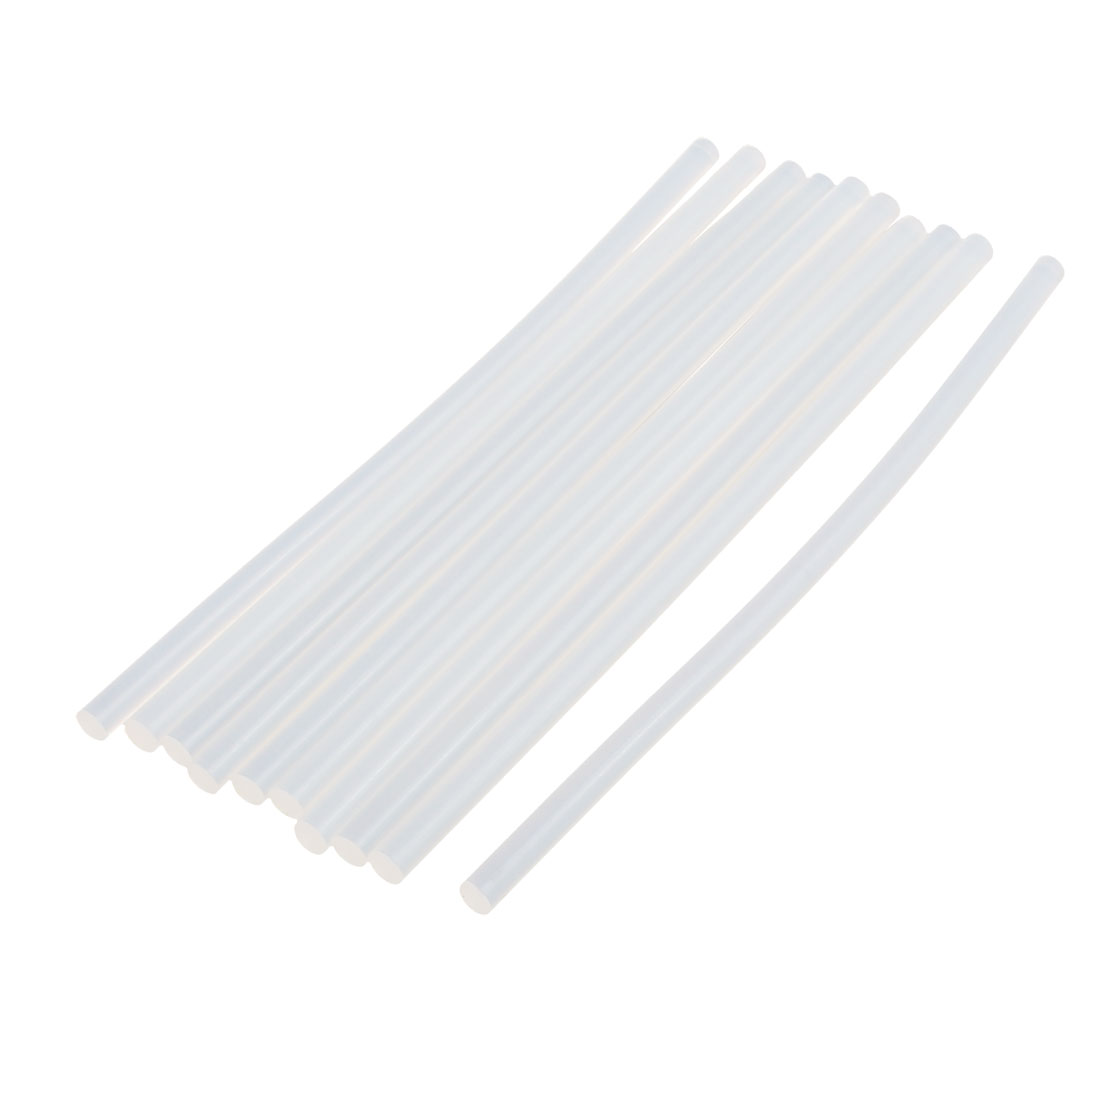 10 Pcs 7mm x 200mm Hot Melt Glue Adhesive Stick Clear for Electric Tool Heating Gun